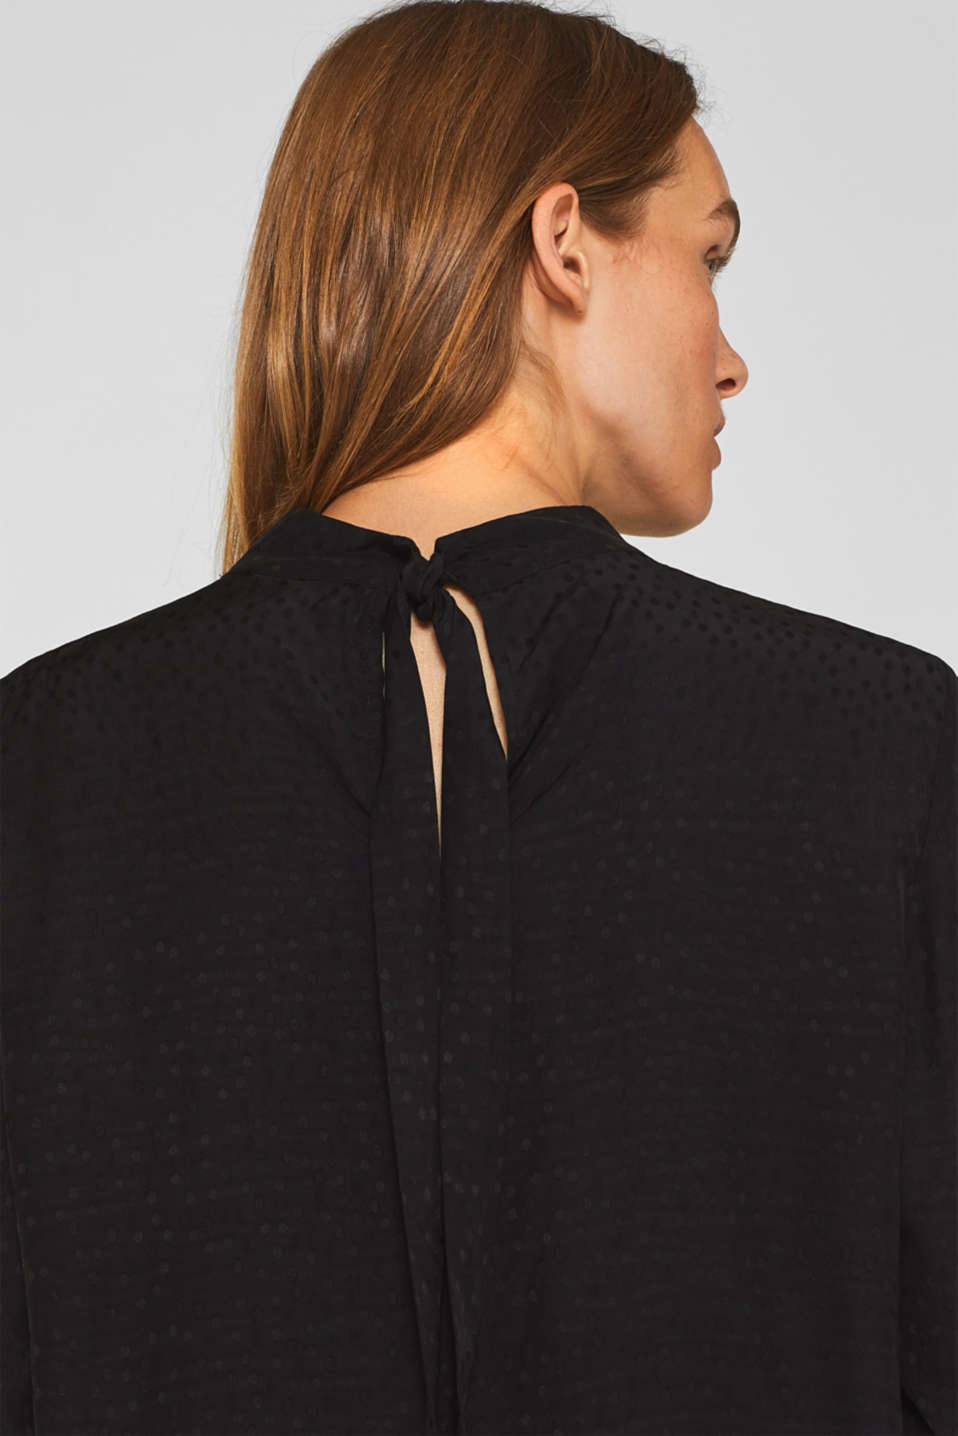 Jacquard blouse with a bow at the back, BLACK, detail image number 2